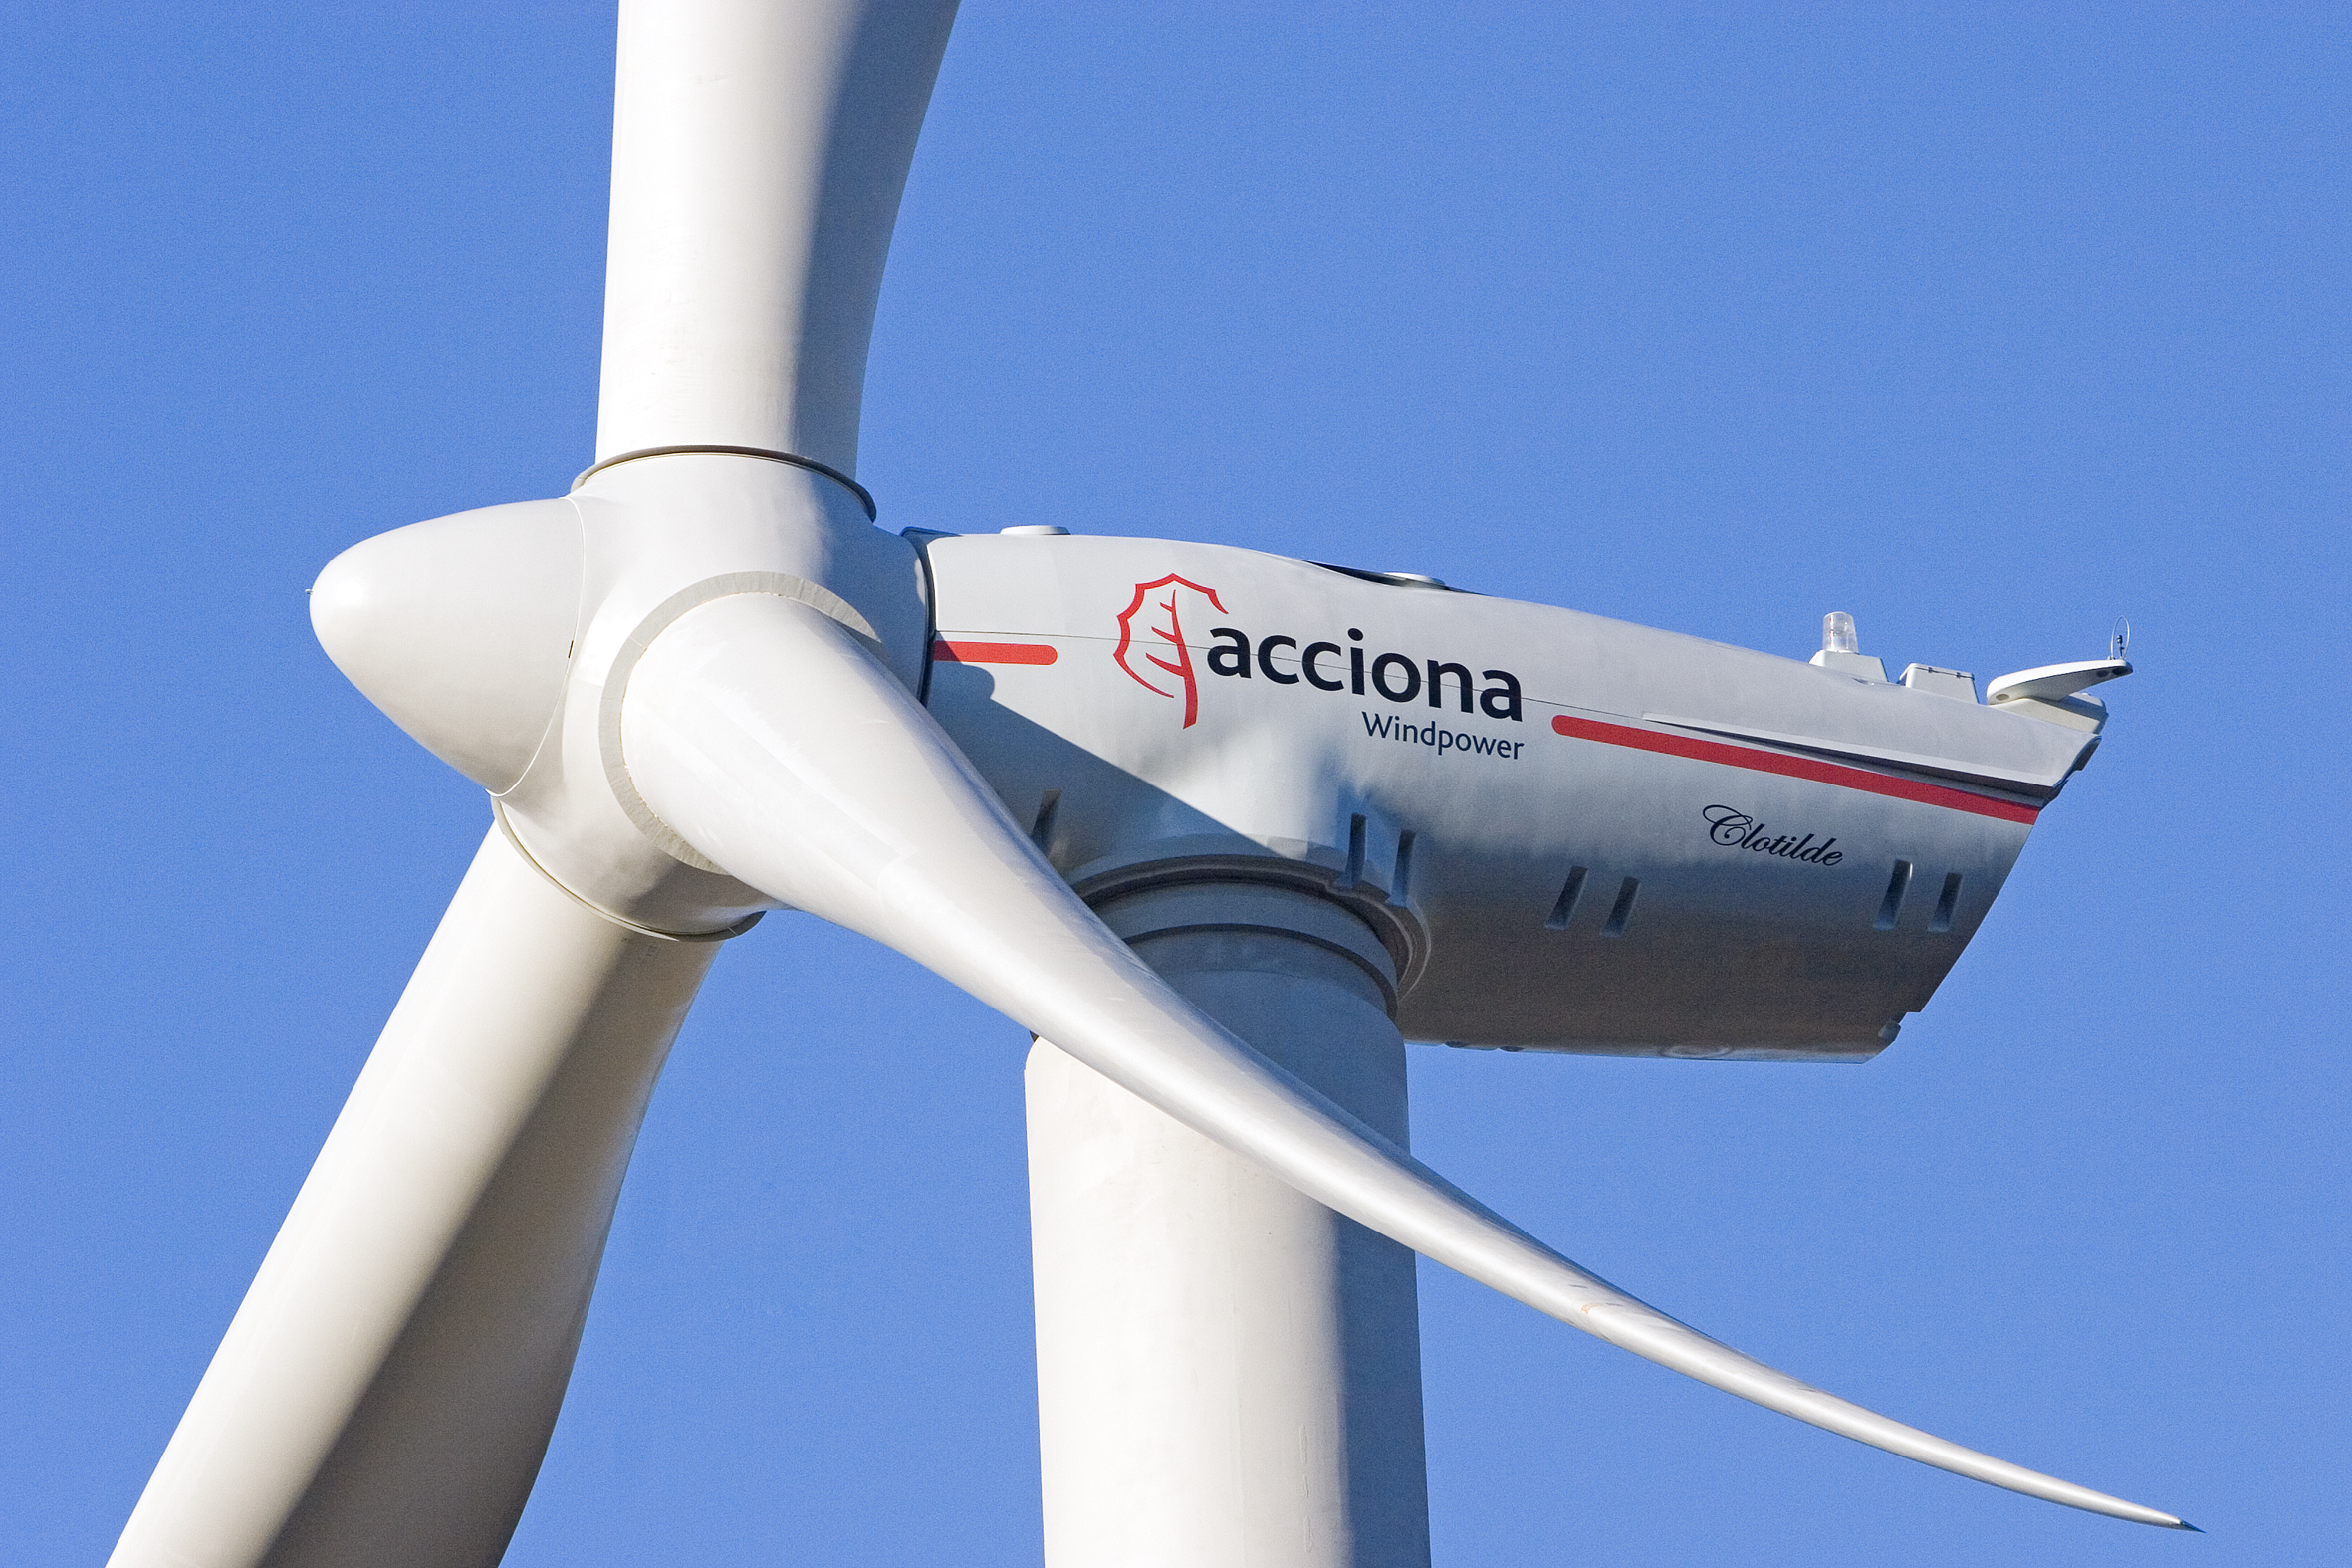 Acciona recorta el beneficio un 6,3%, hasta 189 millones